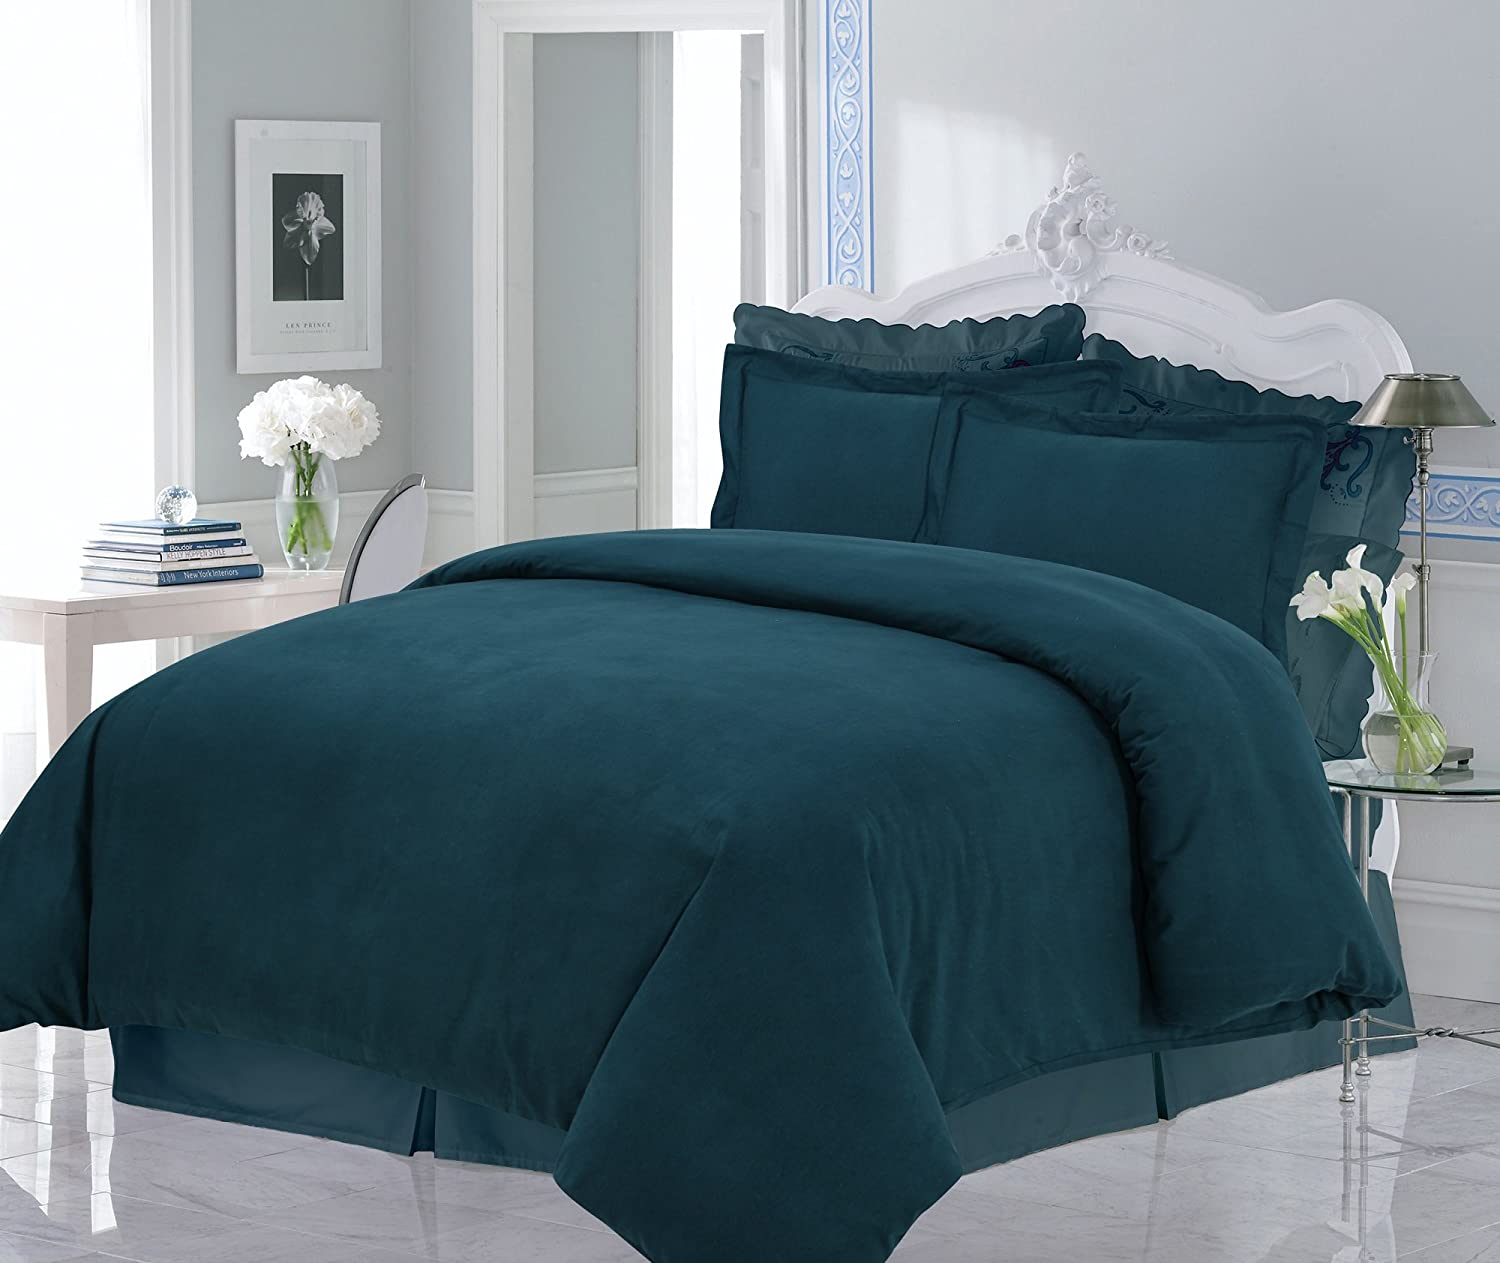 comforter teal best pinterest solid colors sale covers gusevaleontiya duvet queen images on cover superior